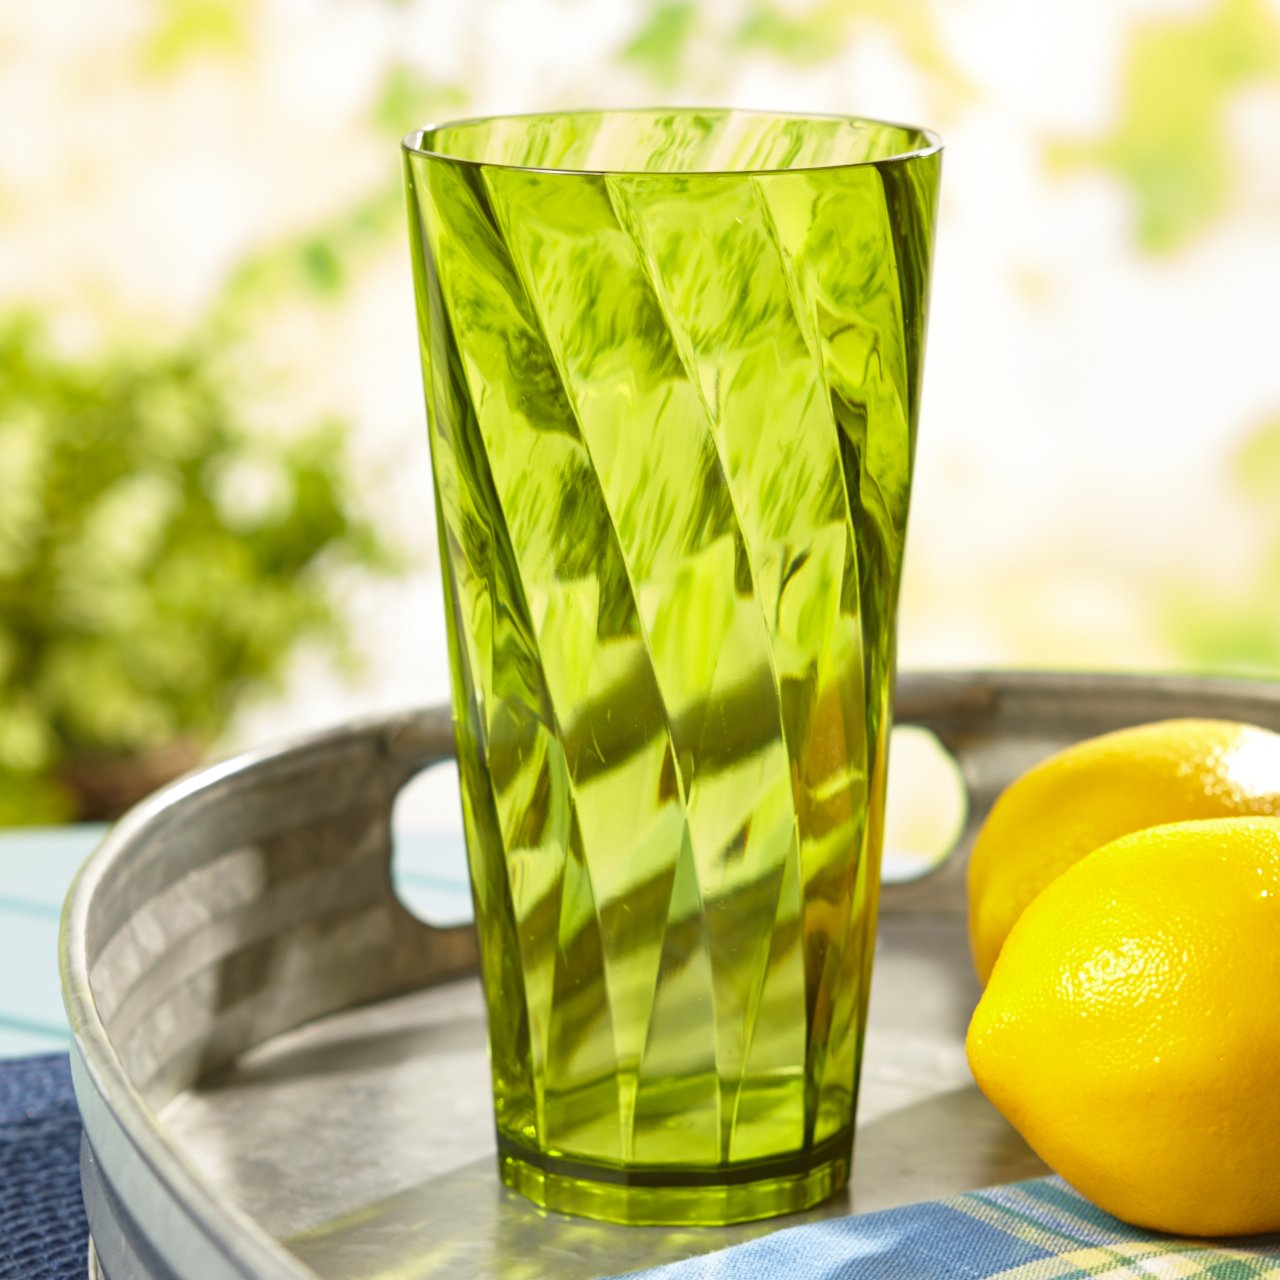 Optix 26-ounce Plastic Tumblers | set of 8 in 4 assorted colors by US Acrylic (Image #7)